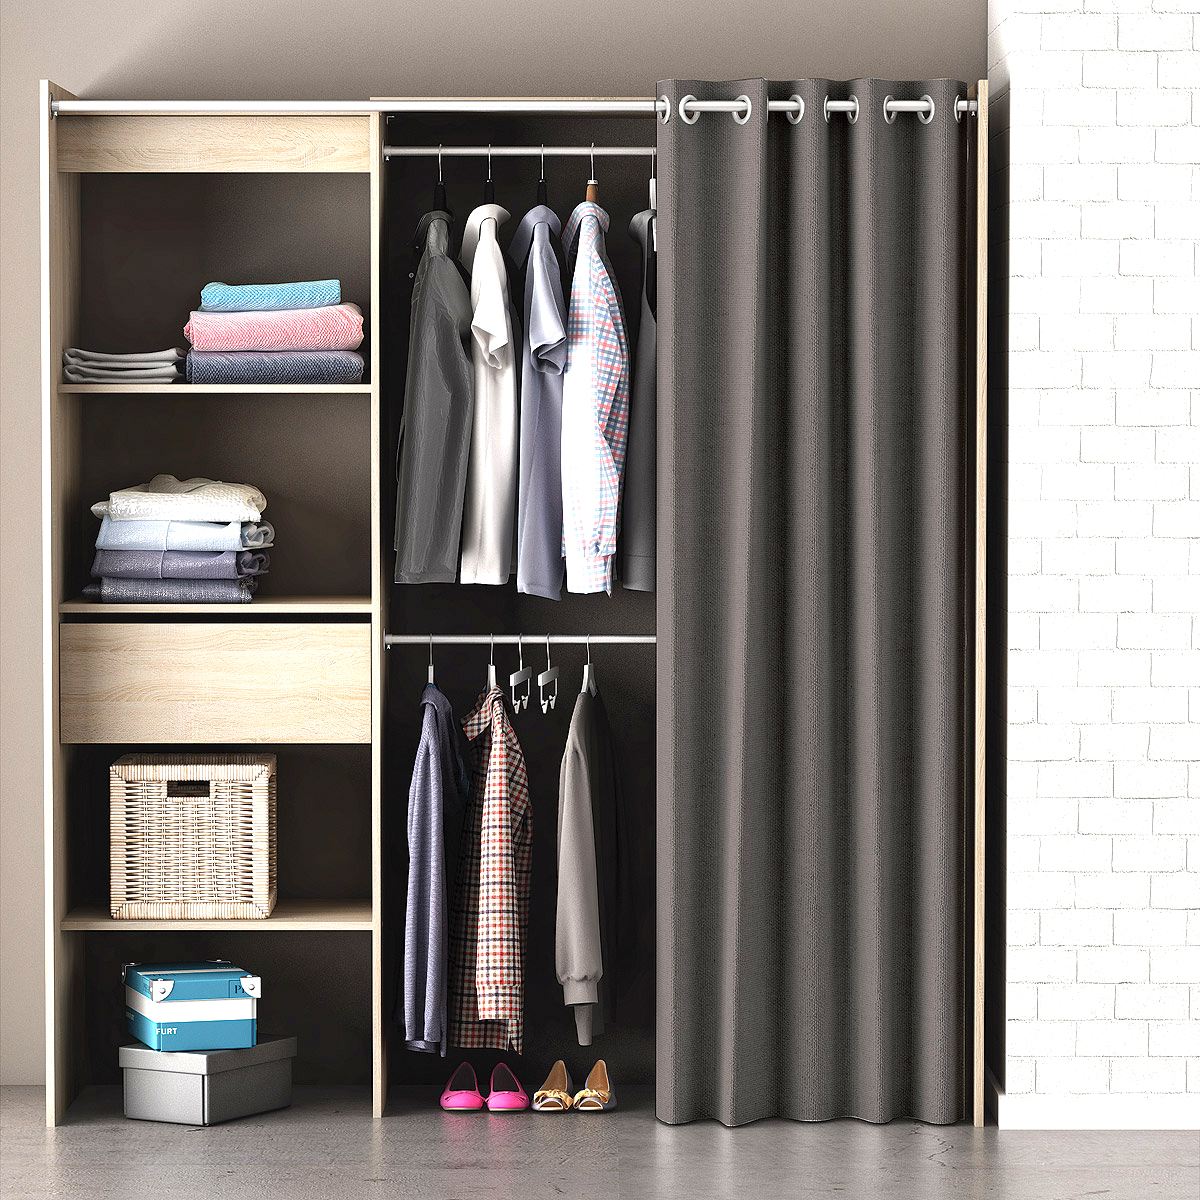 kleiderschrank chicago garderobe regal schrank sonoma eiche mit vorhang. Black Bedroom Furniture Sets. Home Design Ideas